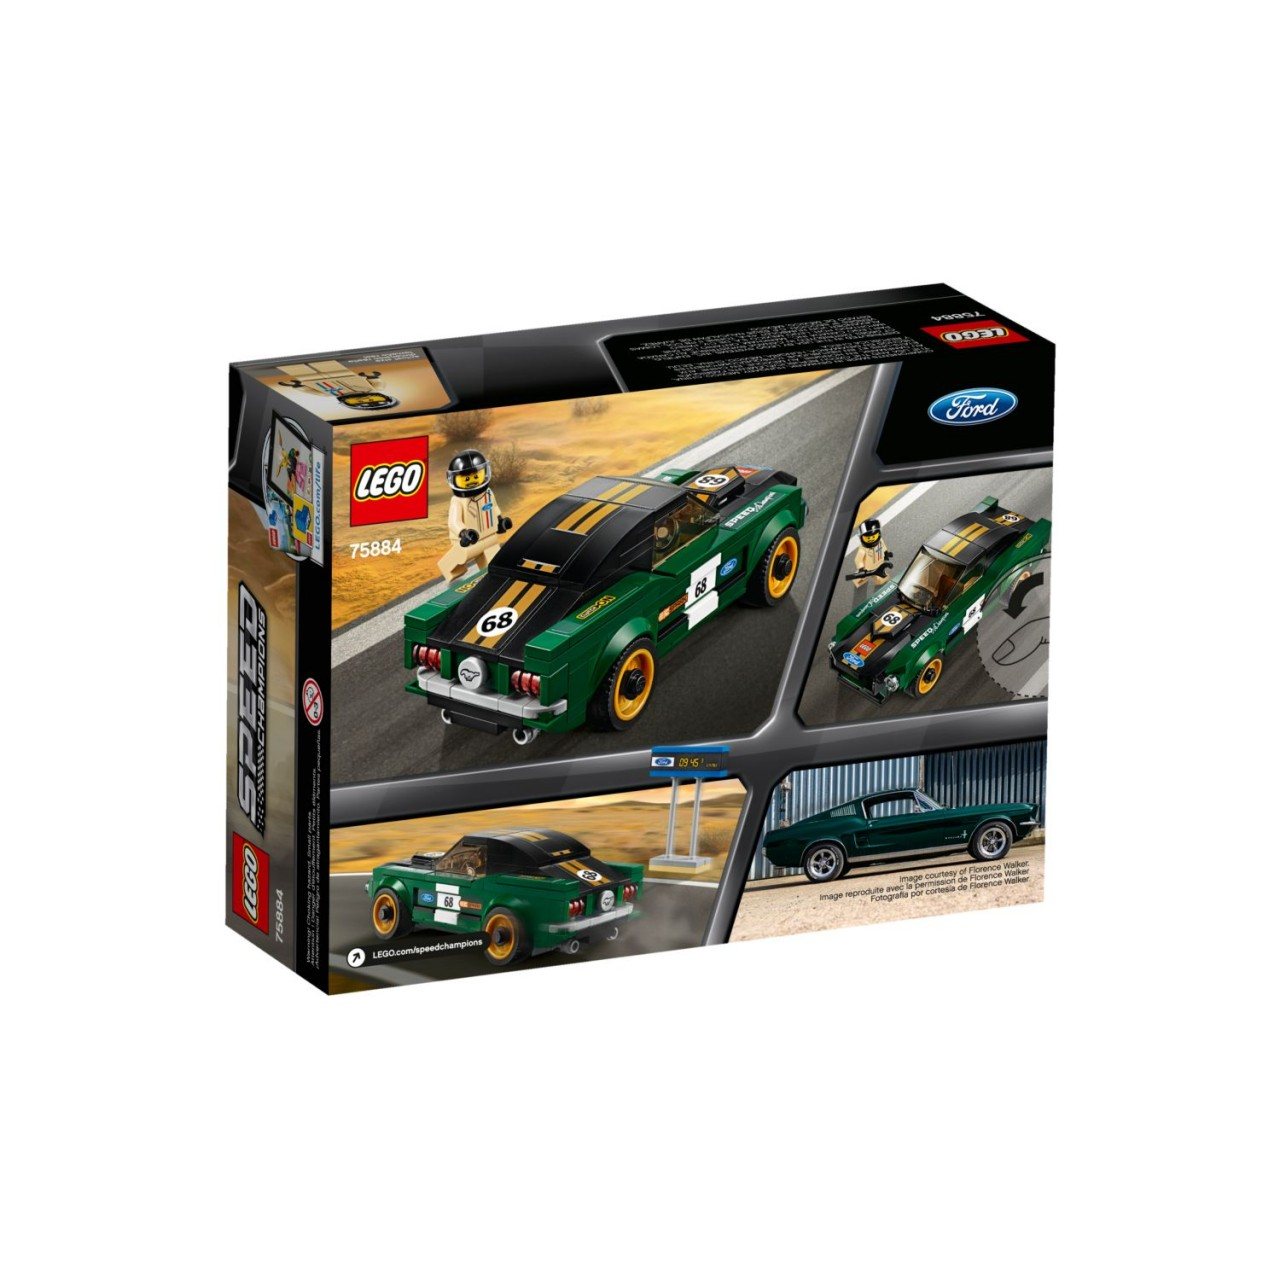 LEGO SPEED CHAMPIONS 75884 1968 Ford Mustang Fastback